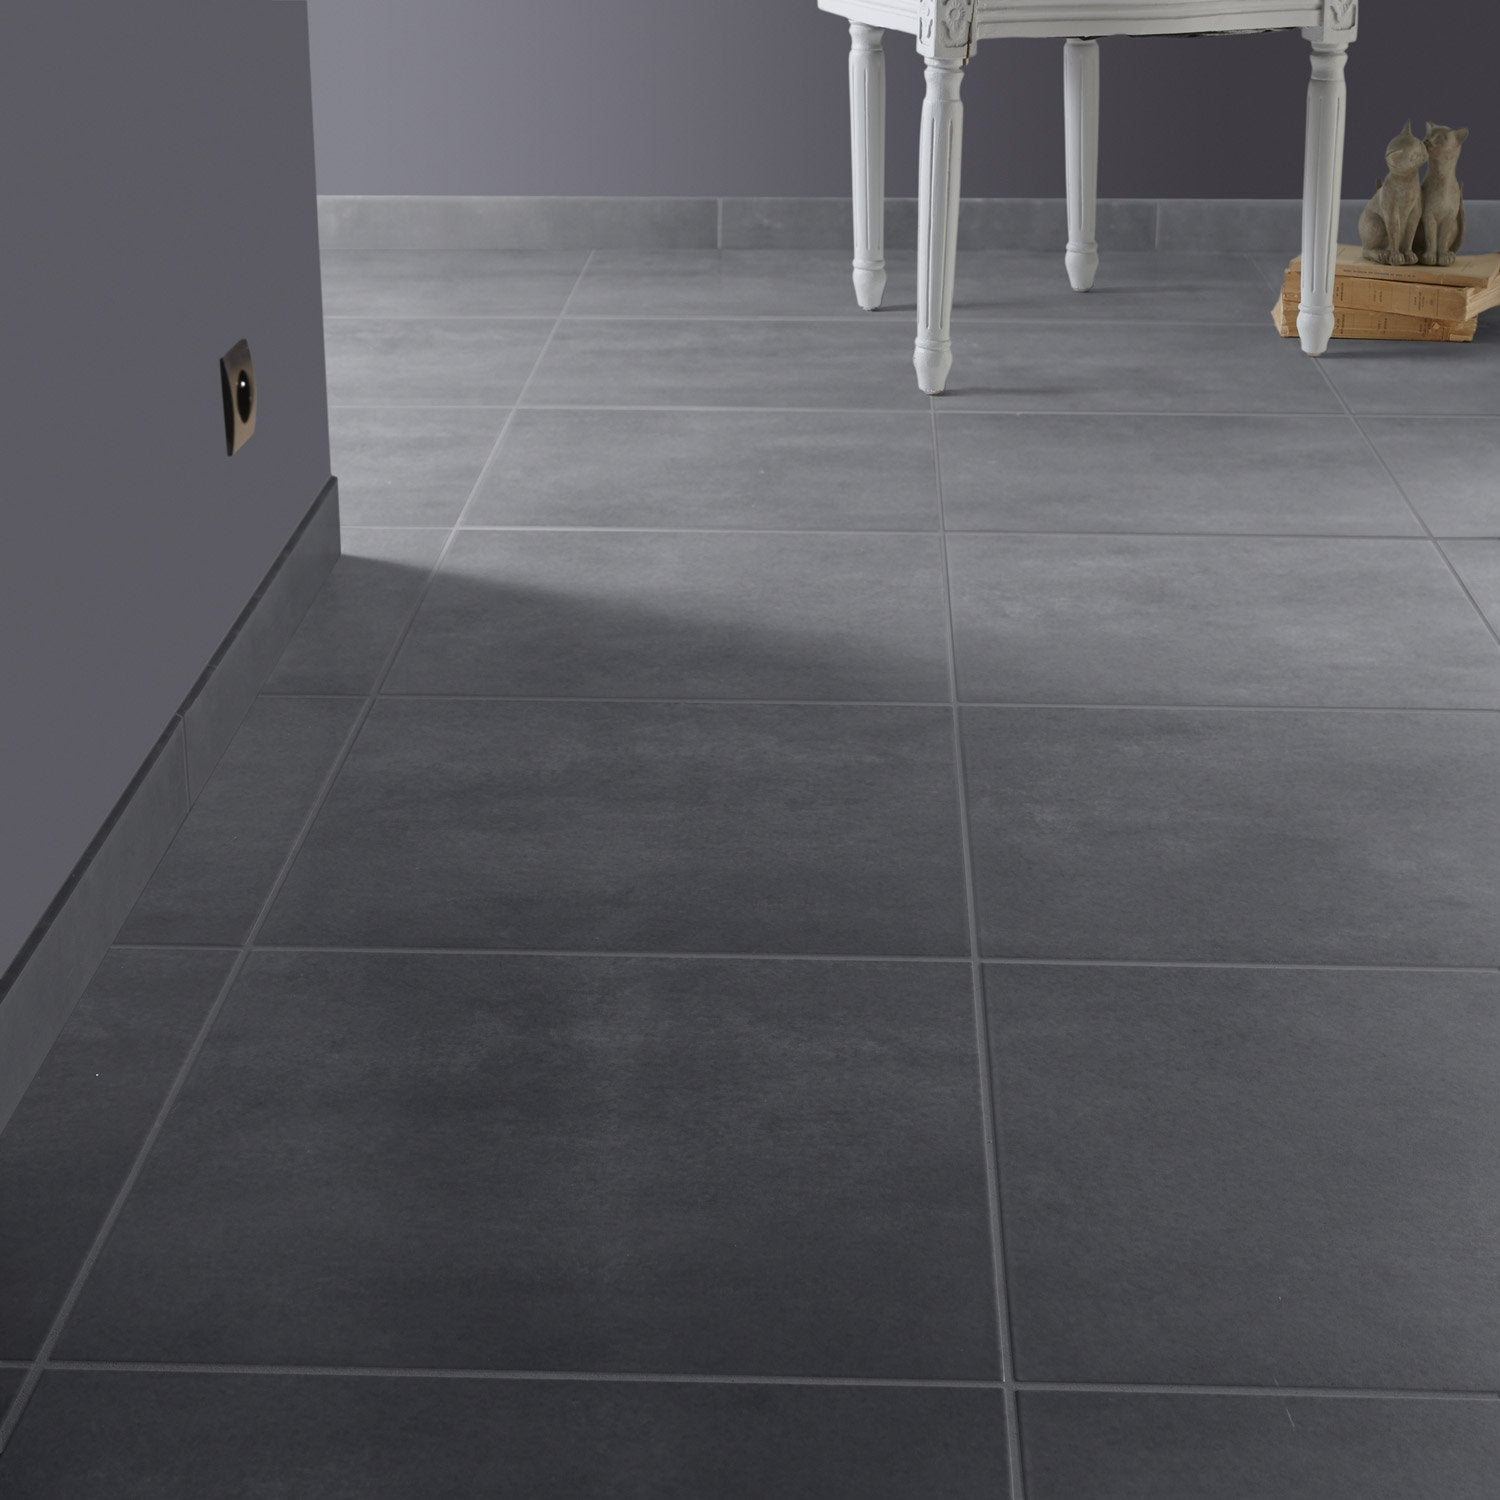 Carrelage gris leroy merlin id e inspirante for Carrelage sol gris clair